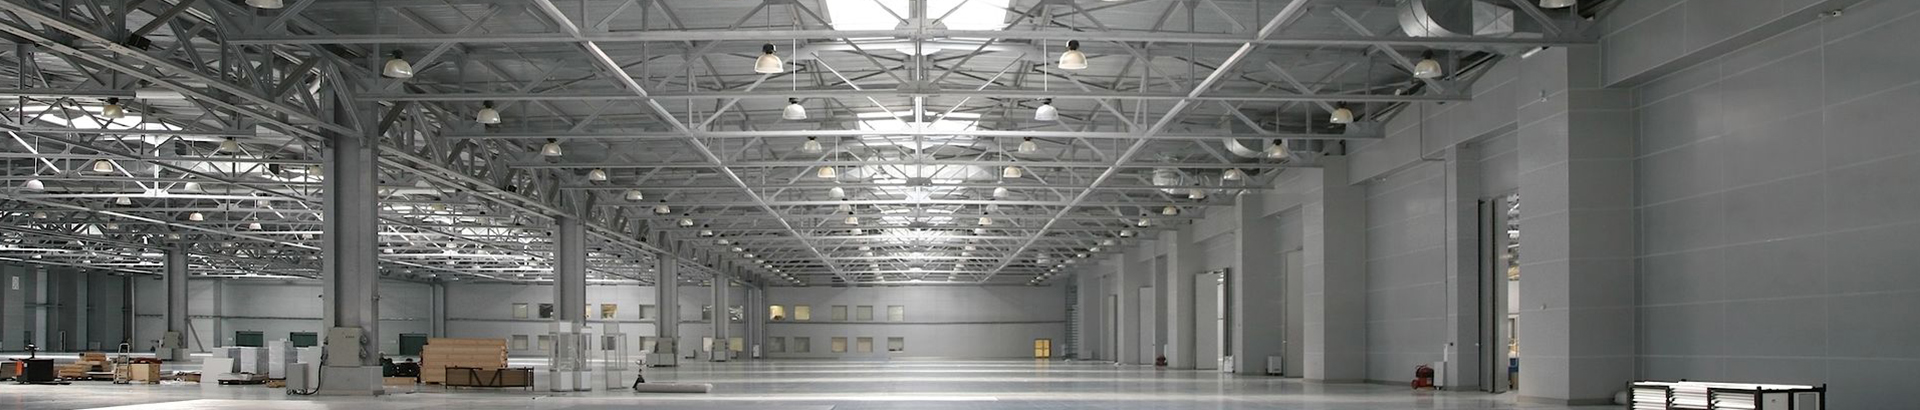 What Is the Warehousing and Transportation Industry?